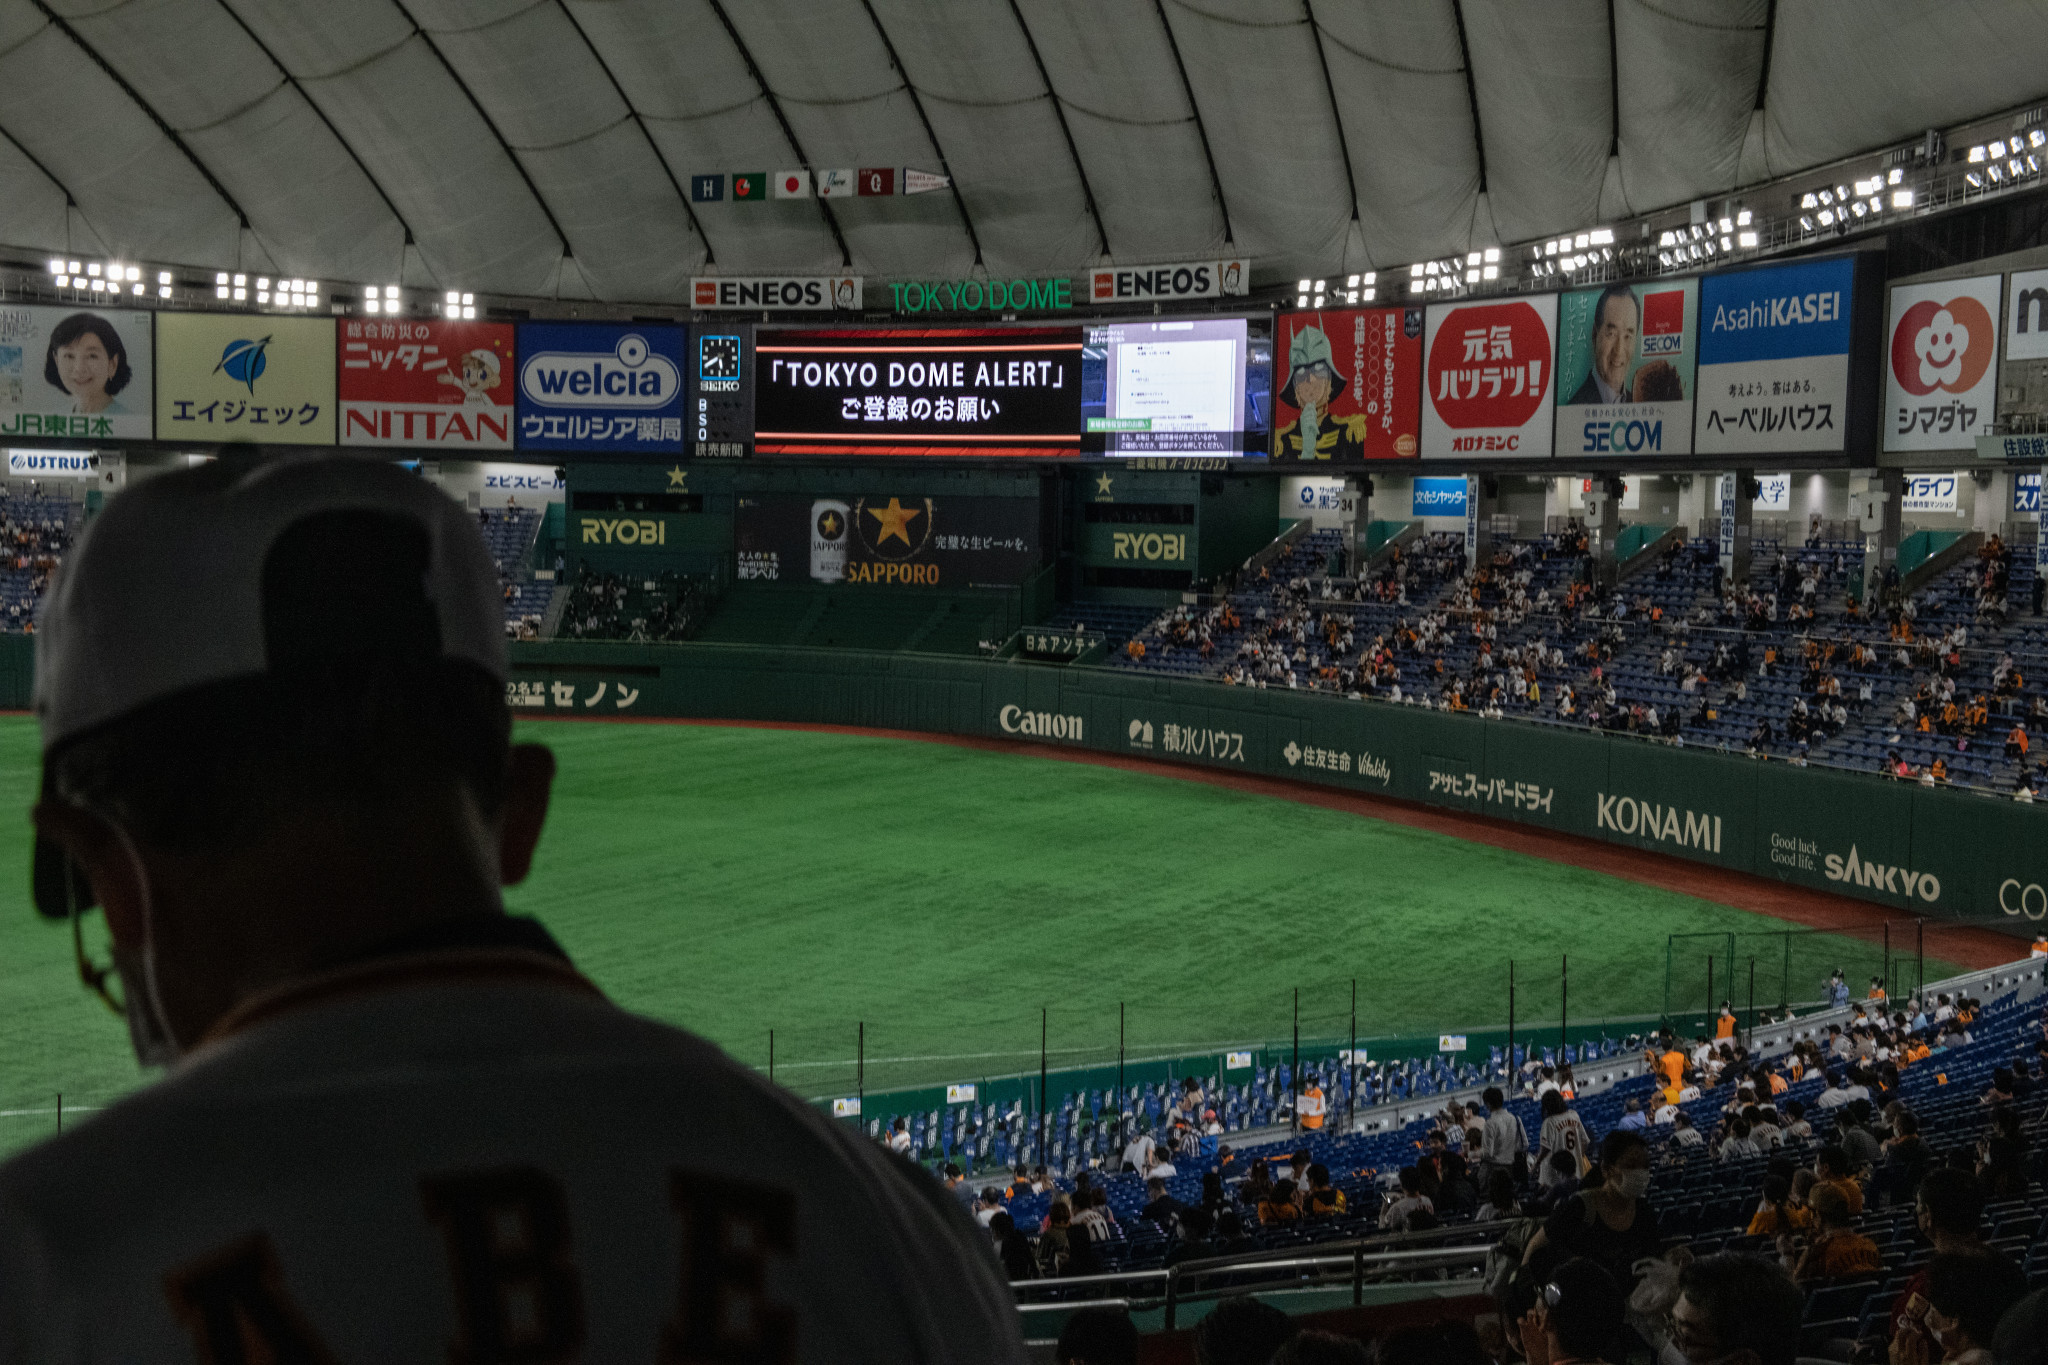 A total of 19,000 fans watched the Yomiuri Giants and Hiroshima Toyo Carp at the Tokyo Dome ©Getty Images